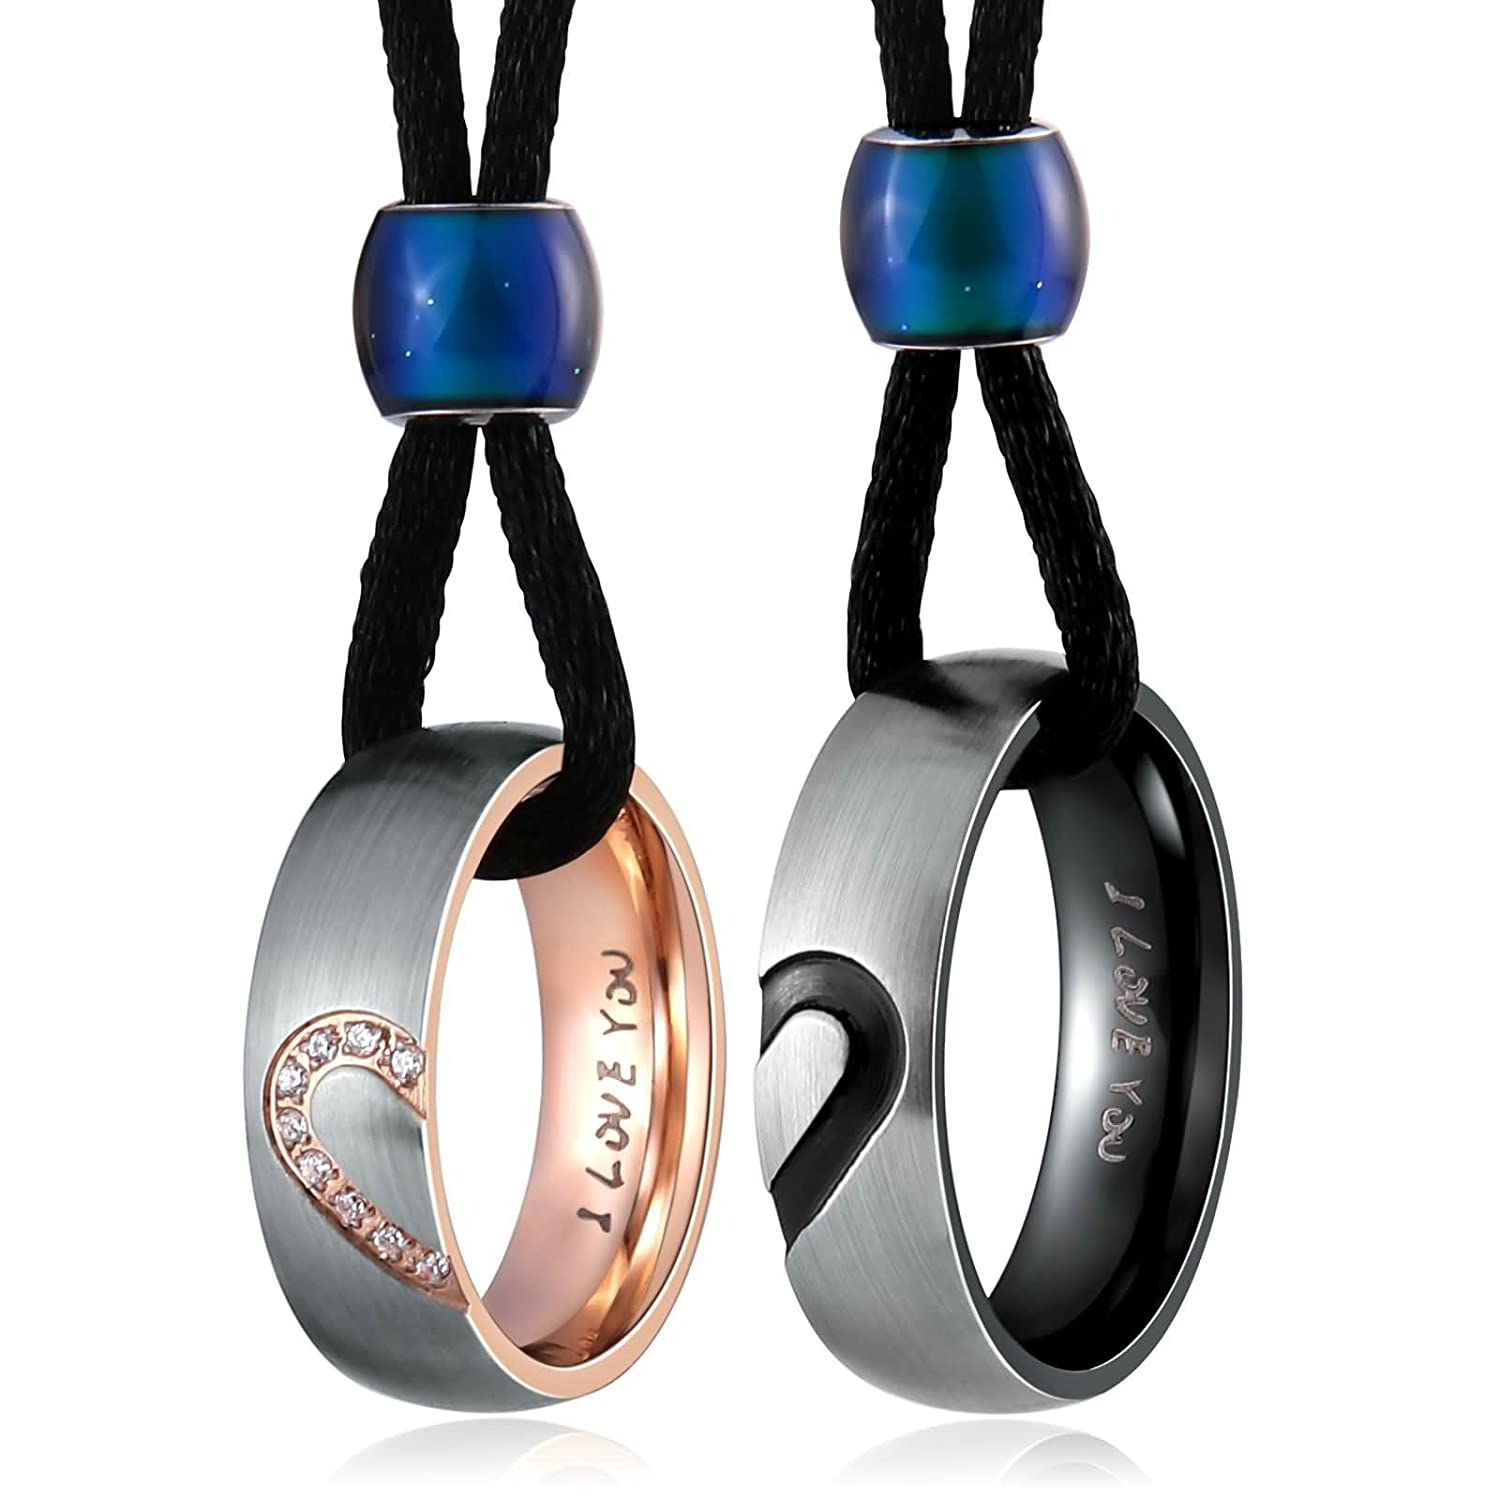 Couples Necklace for Him and Her Stainless Steel Ring Pendant Love Heart Wedding Necklace Set Silver by Aienid   Amazon.com